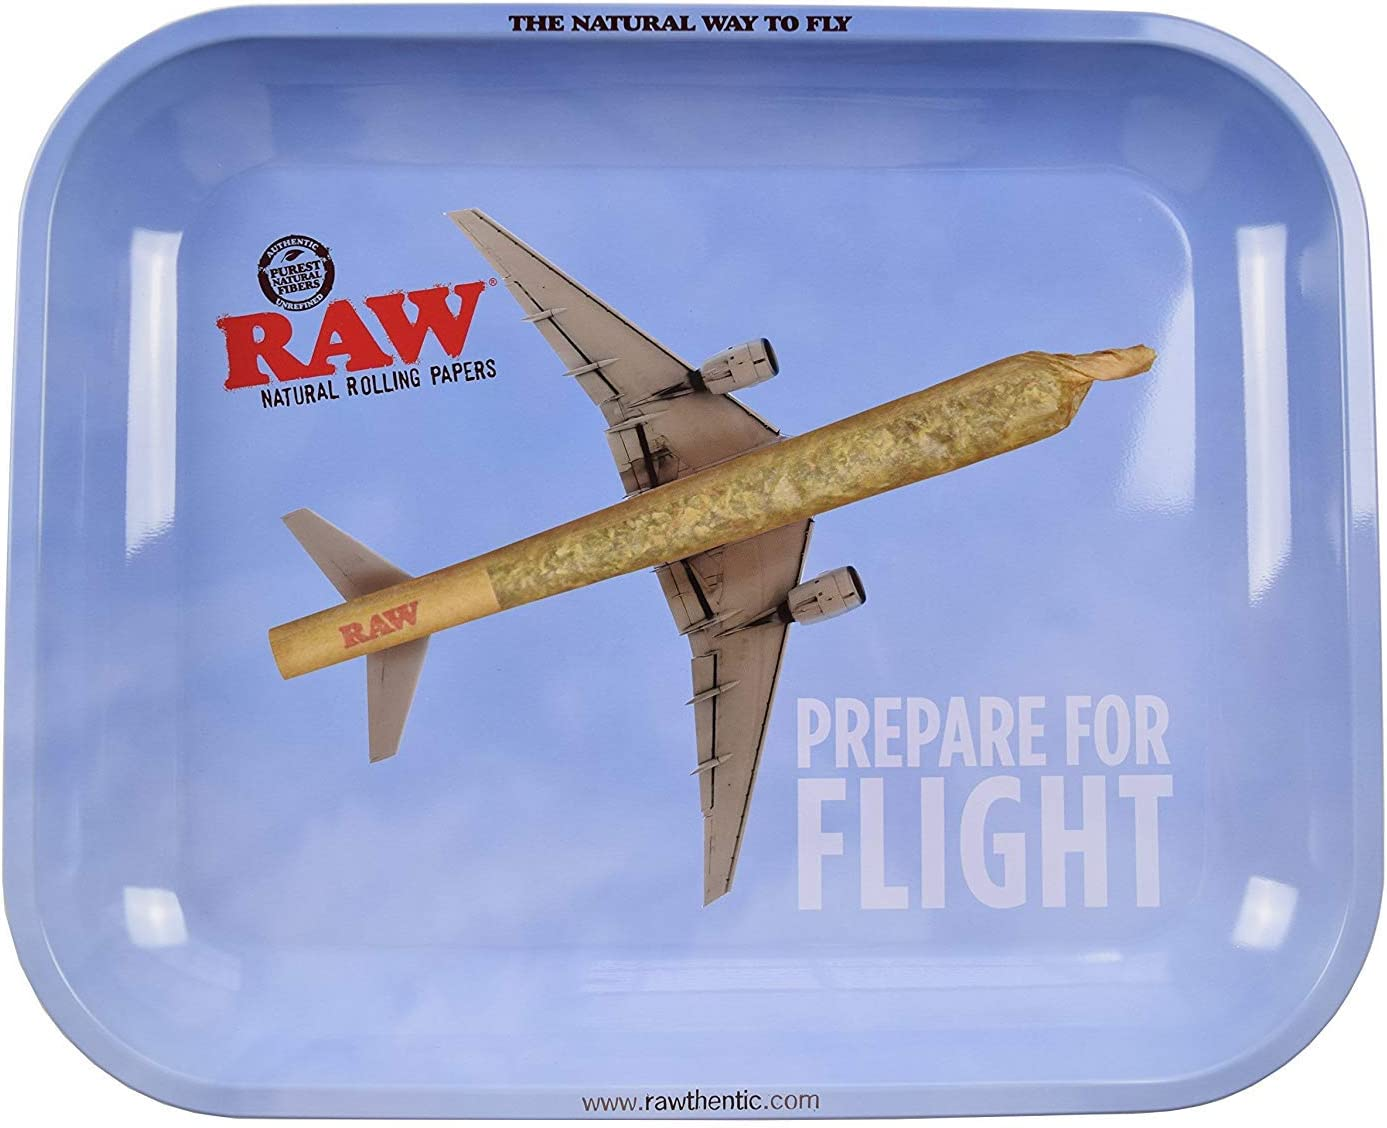 RAW Prepare for Fight - Bandeja de metal para liar cigarrillos (34 x 28 cm)